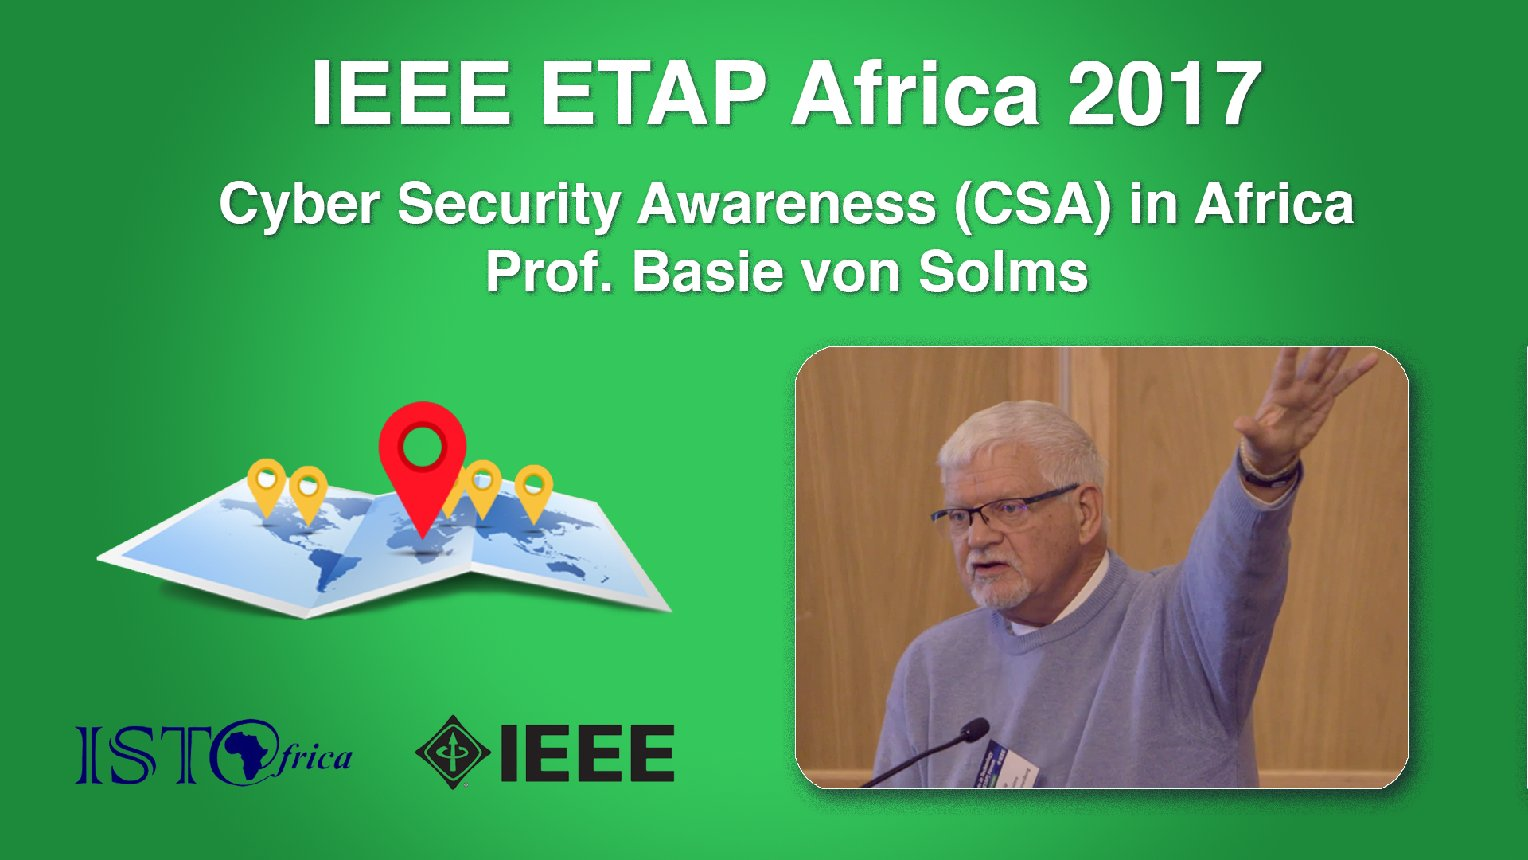 Cyber Security Awareness (CSA) in Africa: Basie von Solms - ETAP Forum Namibia, Africa 2017